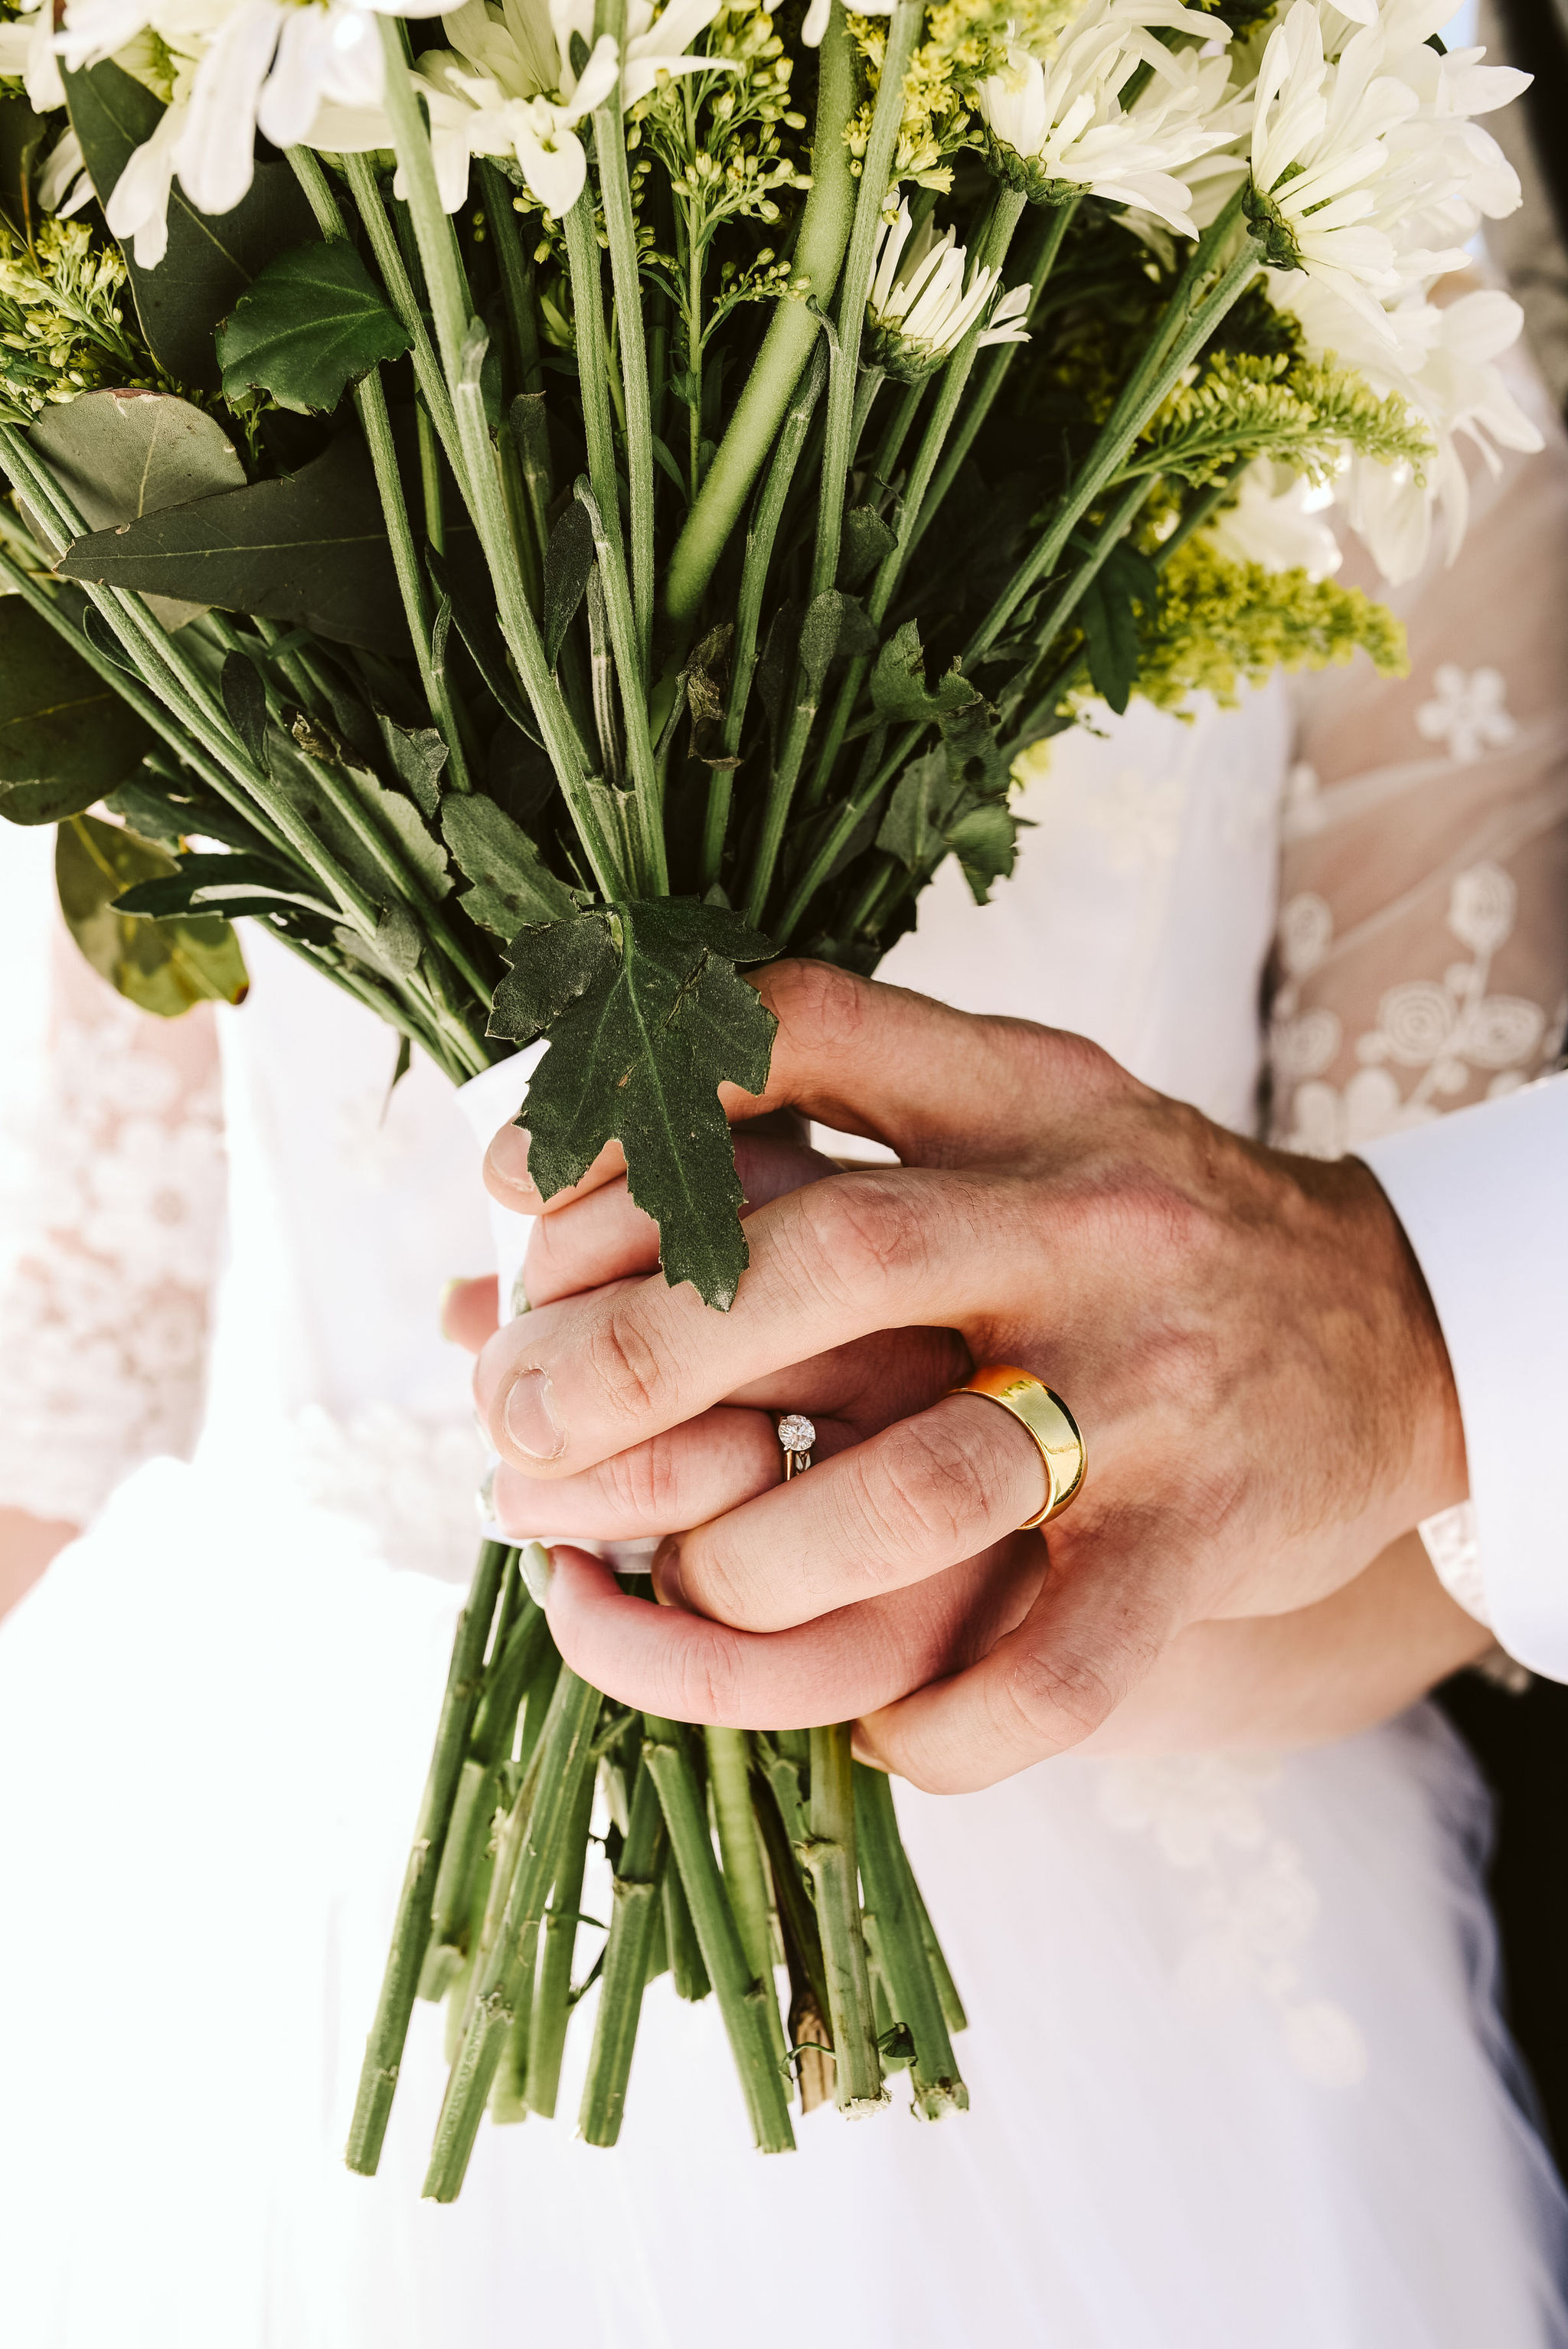 Baltimore, Church Wedding, Maryland Wedding Photographer, Vintage, Classic, 50s Style, Bride and Groom Holding Hands, Closeup of Rings, Detail Photo, Bride and Groom Holding Bouquet, White Daisies